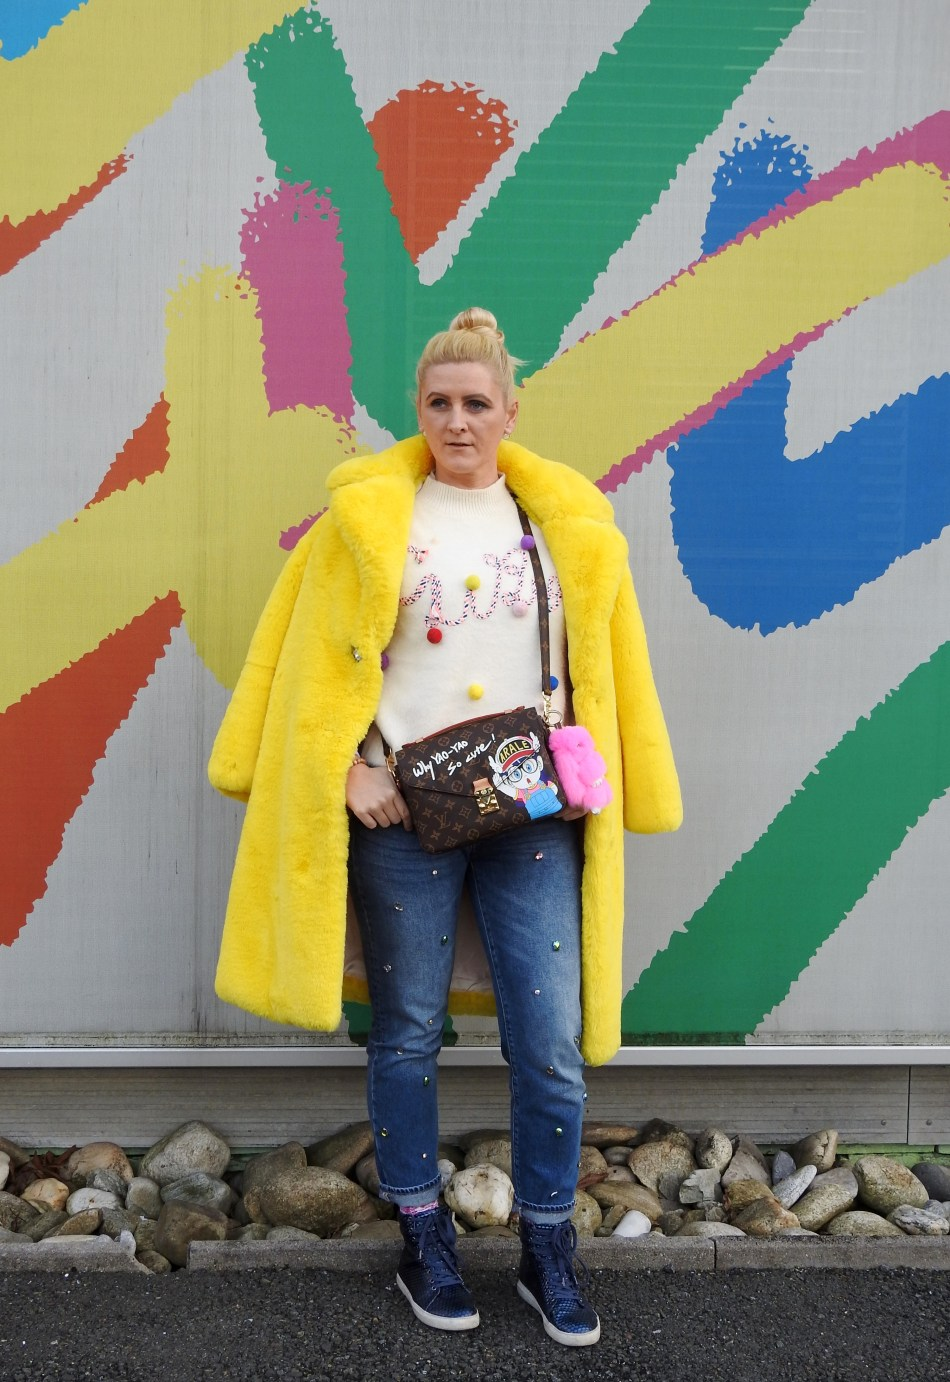 Yellow-Fakefur-Coat-Denim-Studs-Sneakers-Pompom-Sweater-Louis-Vuitton-Bag-carrieslifestyle-Tamara-Prutsch